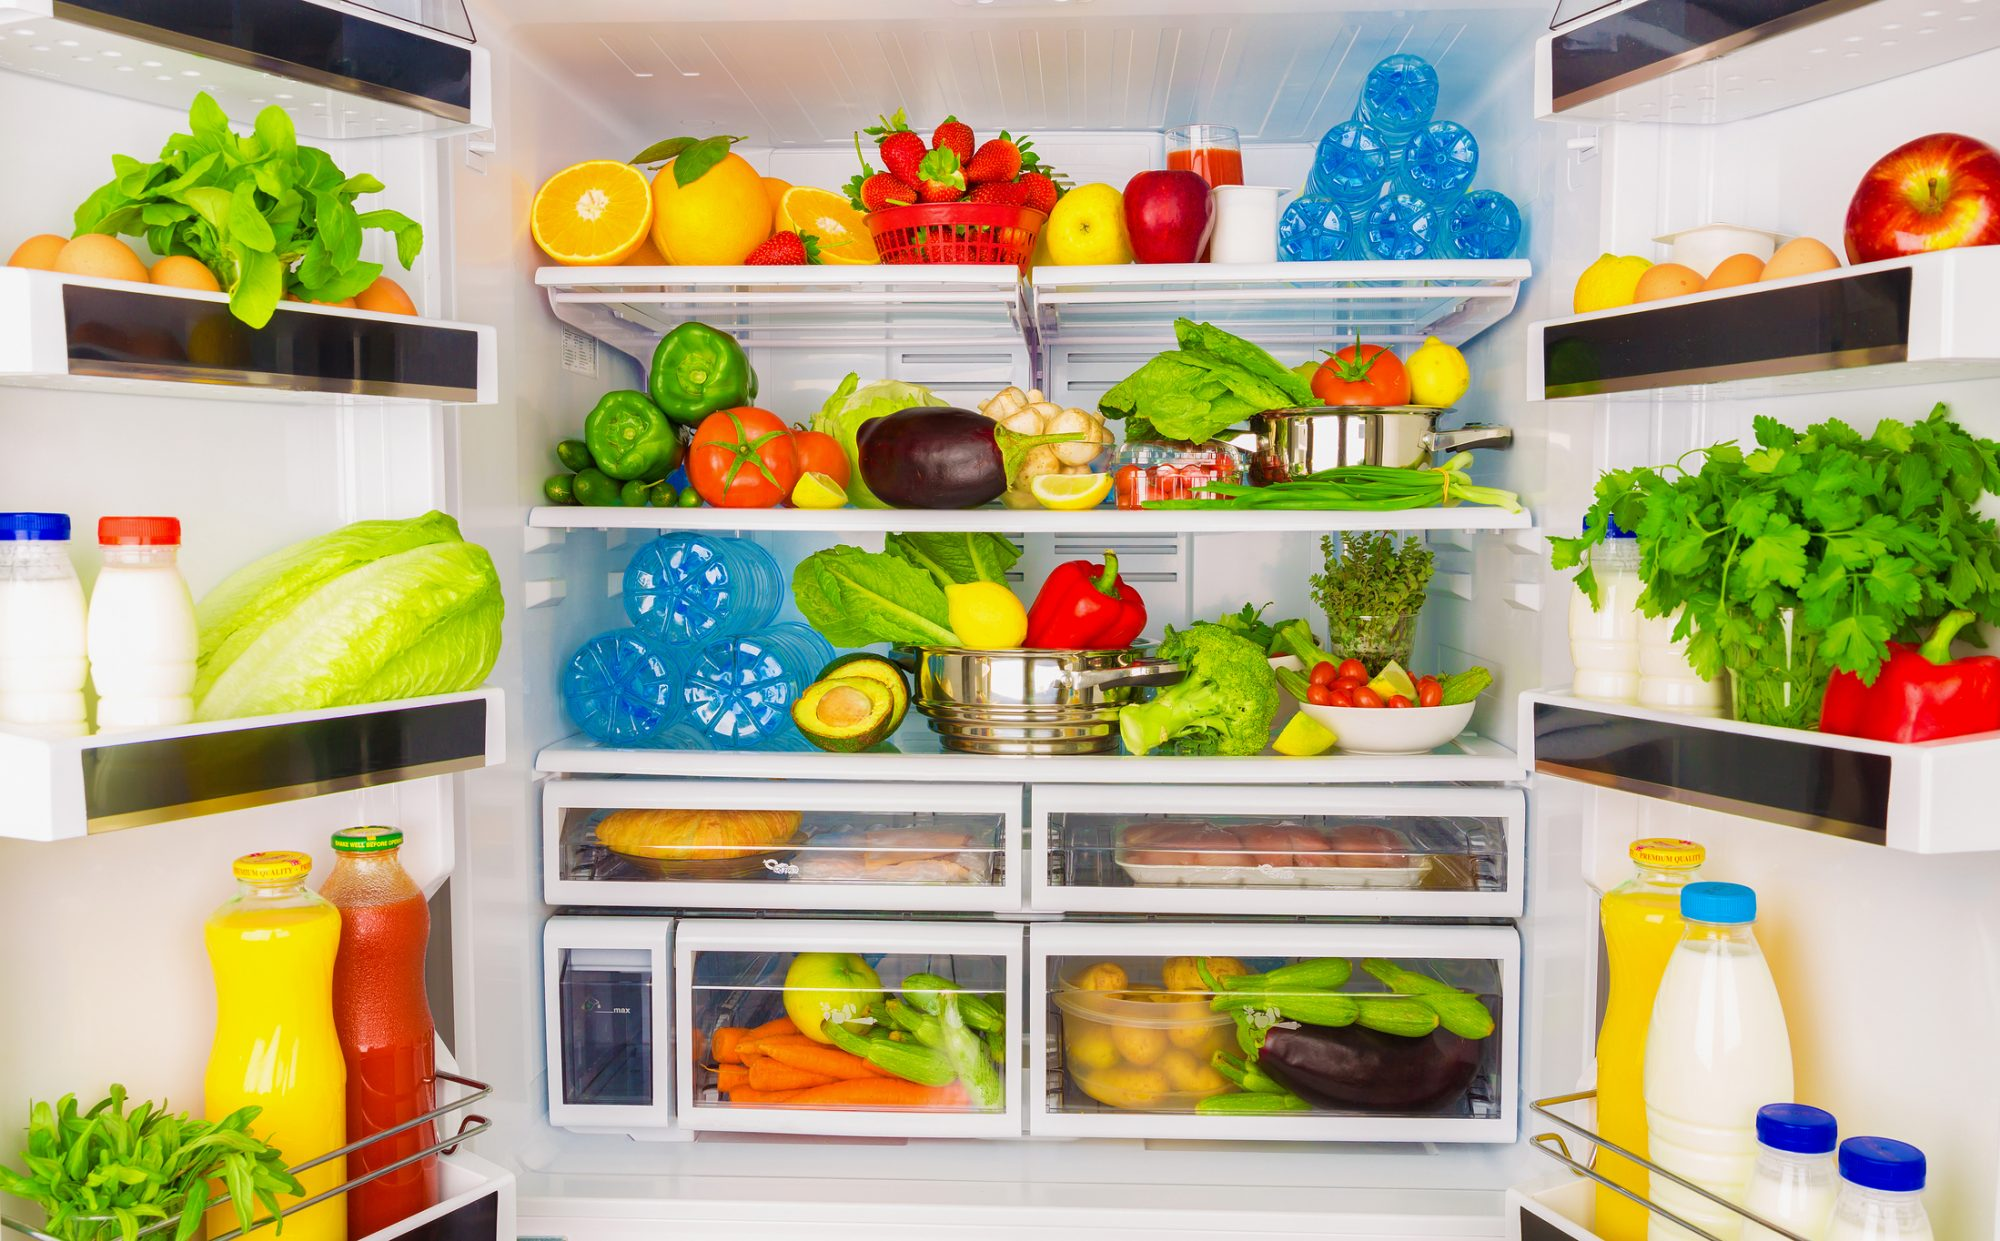 open-refrigerator-vegetables-fruits-blog0517.jpg